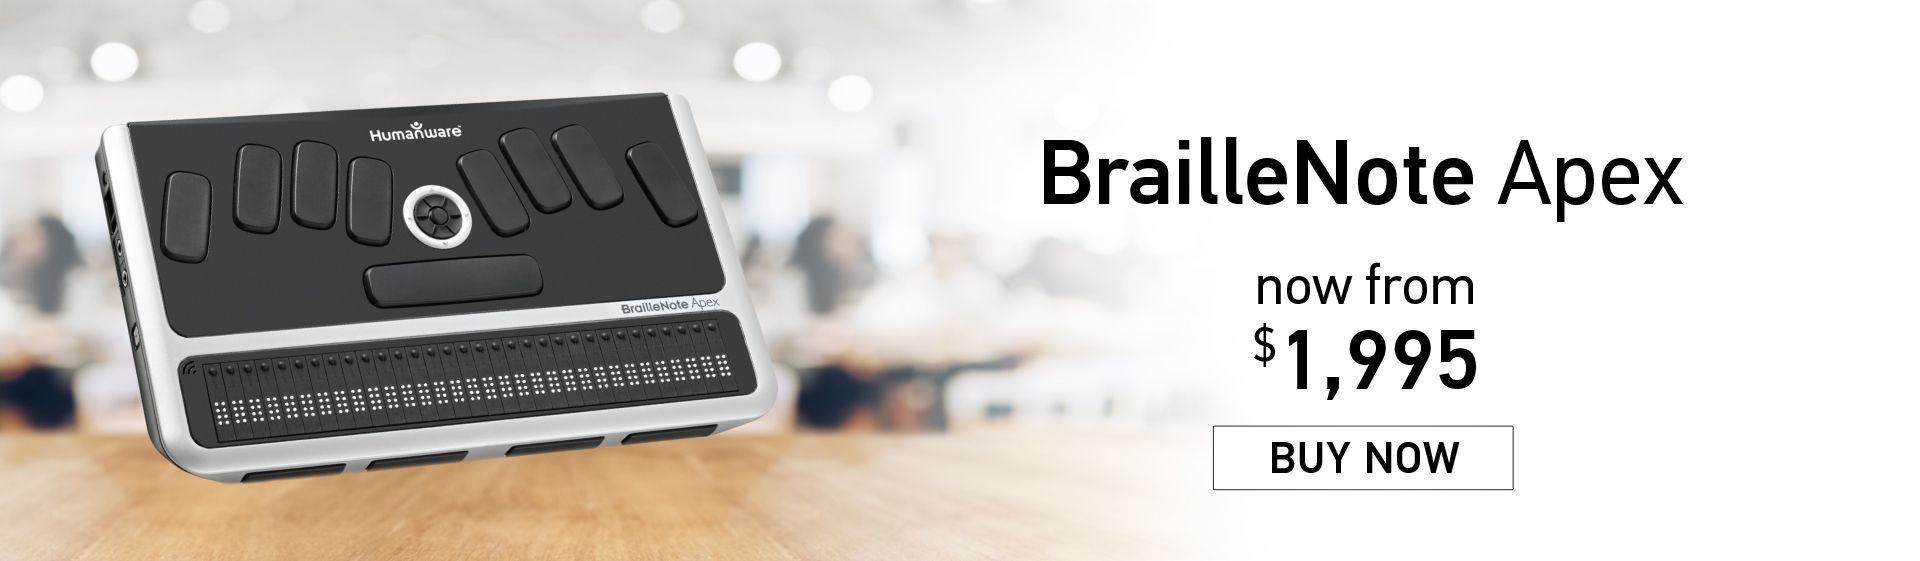 BrailleNote Apex - now from $1,995